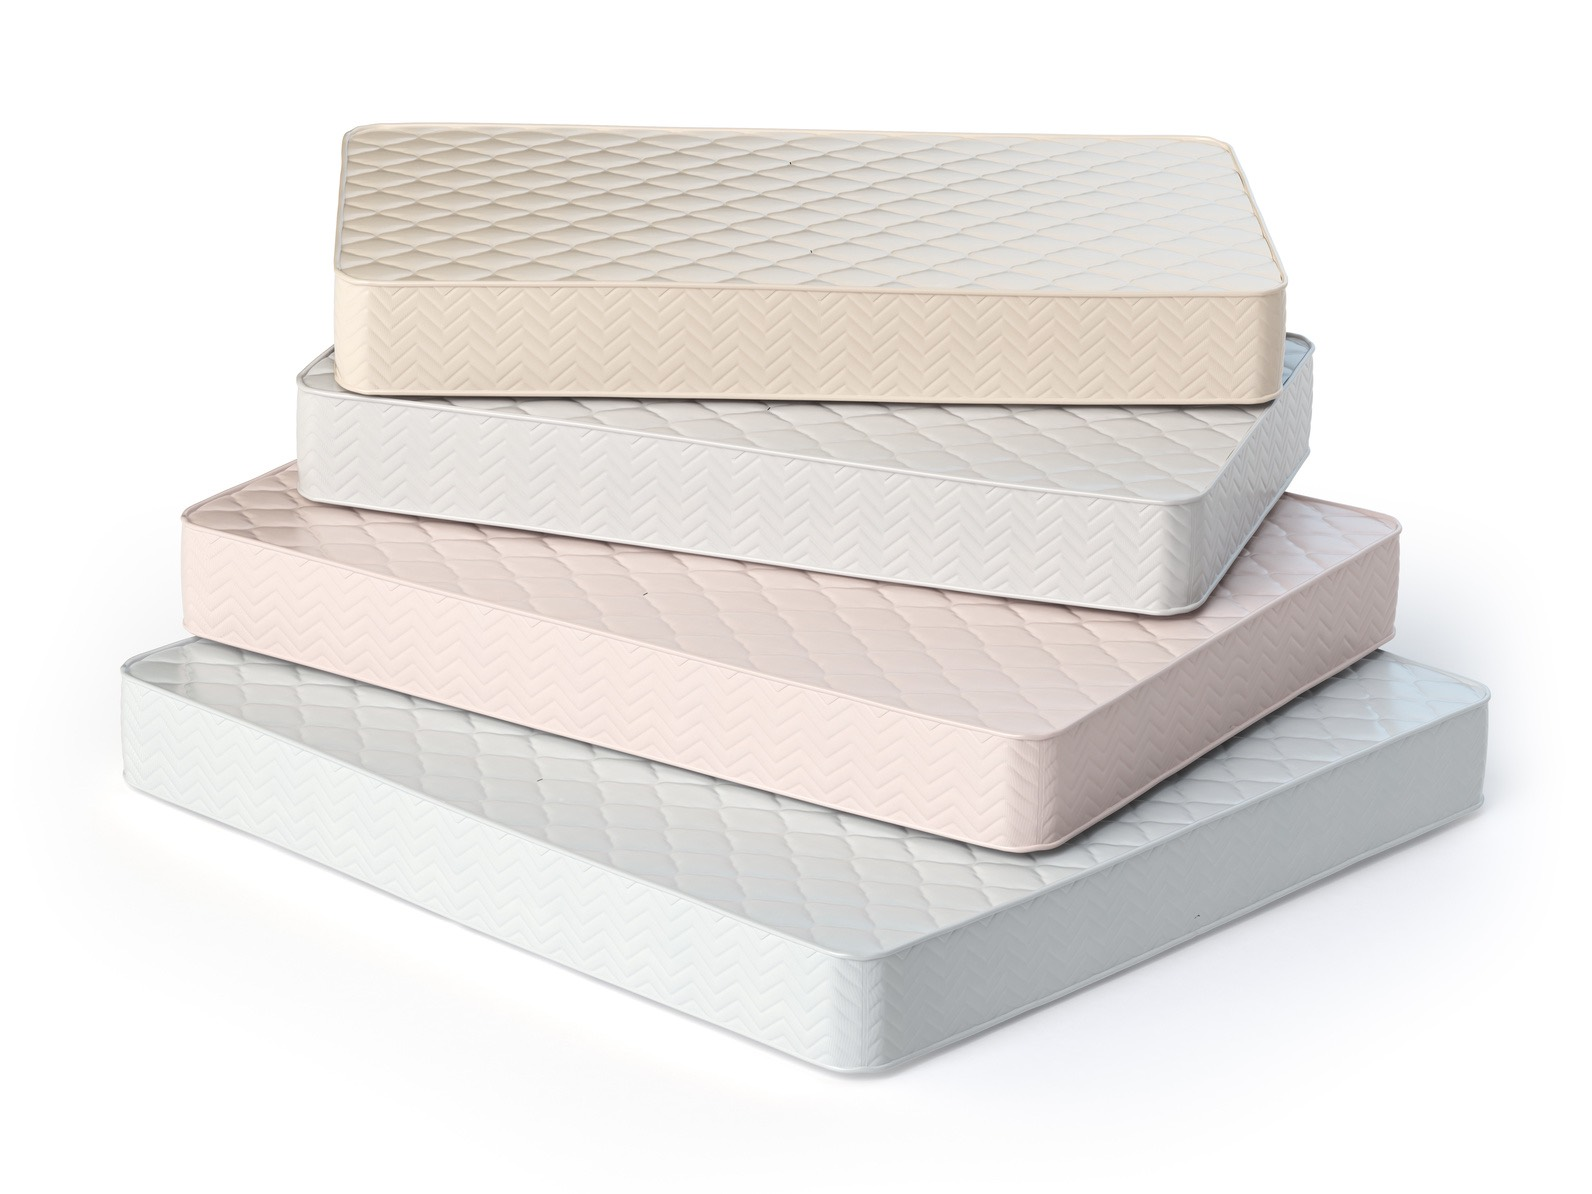 What Is The Best Mattress Size Wr Mattress